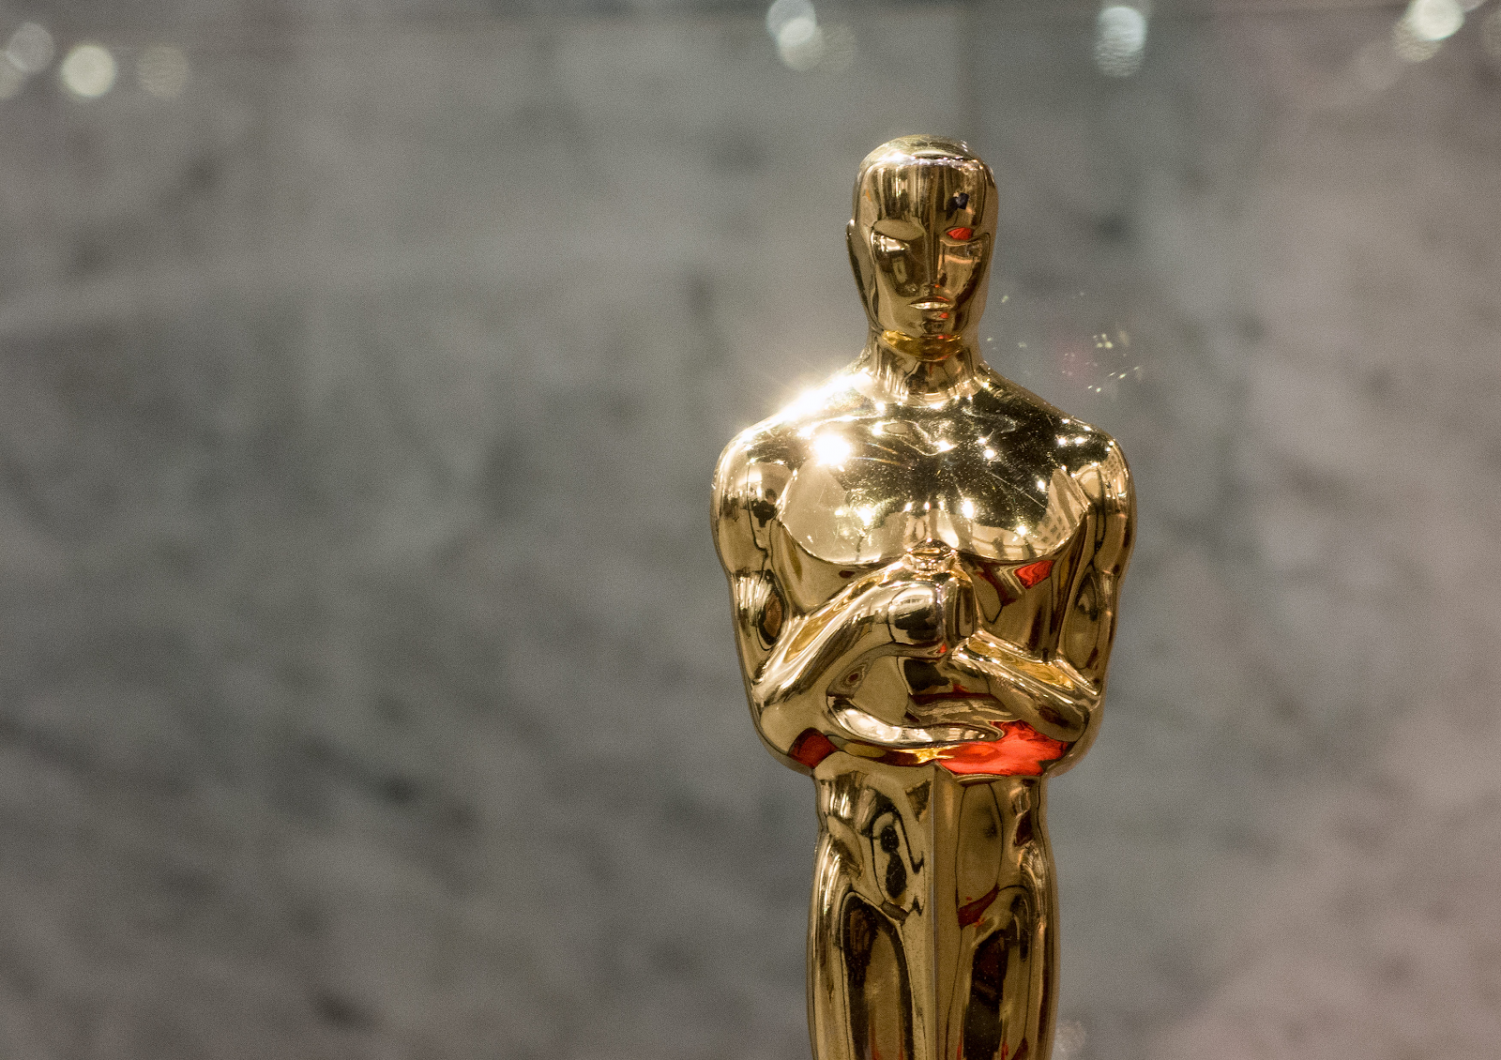 Picture of the prestigious Oscar award. Photo Courtesy of Libreshot via Google Images.